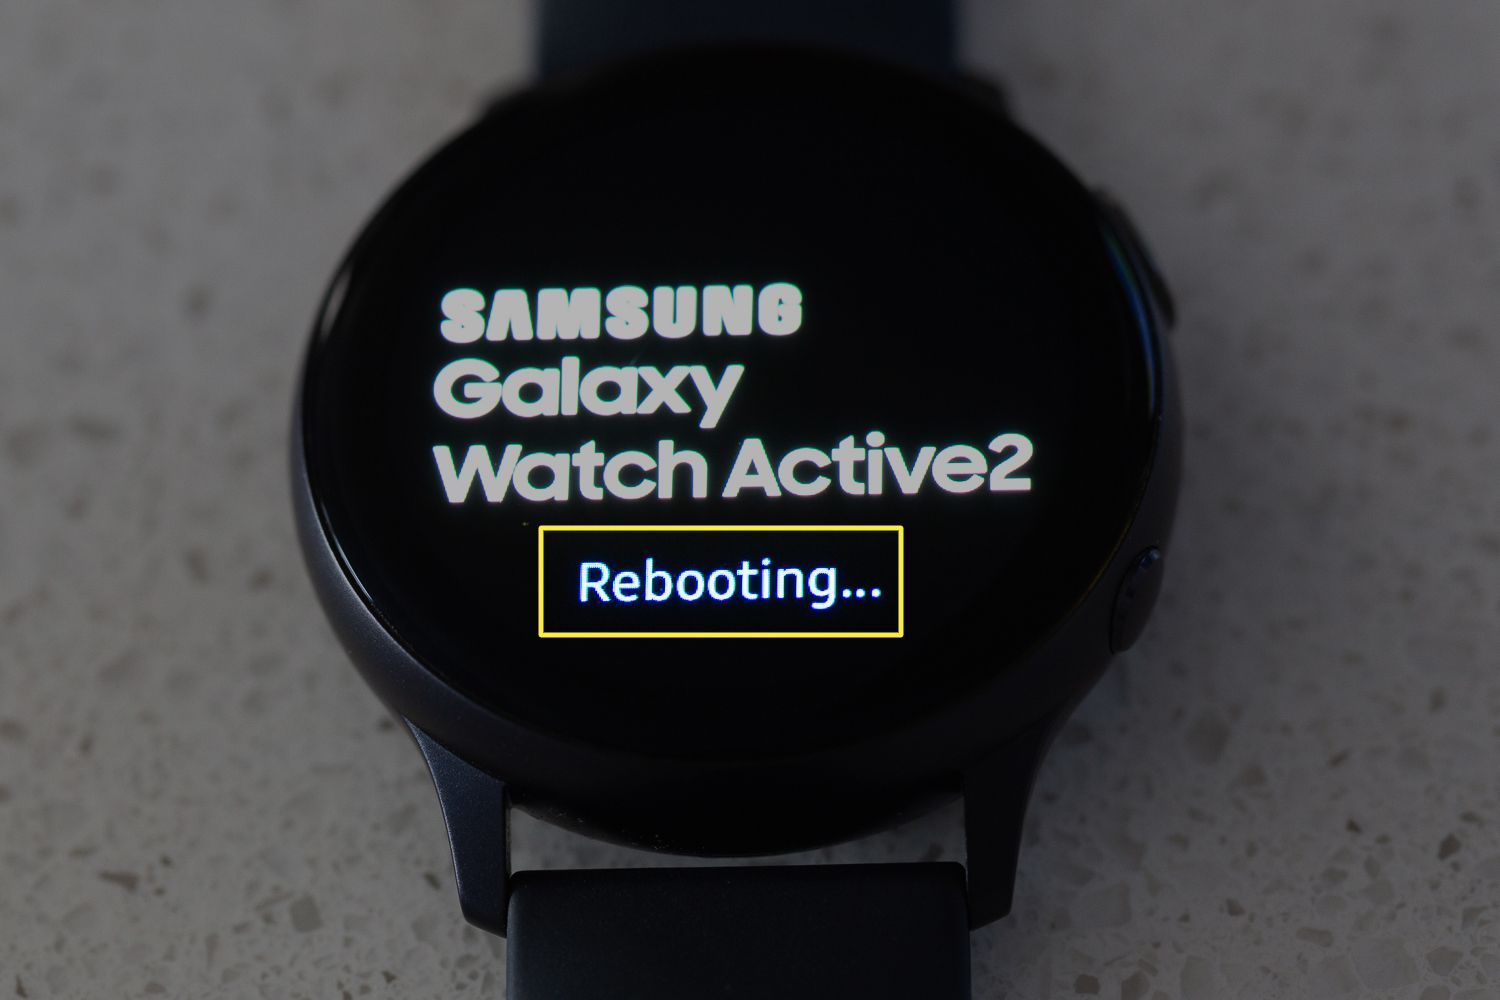 The rebooting message on a Samsung Galaxy Watch Active2 indicating a device reboot is in progress.